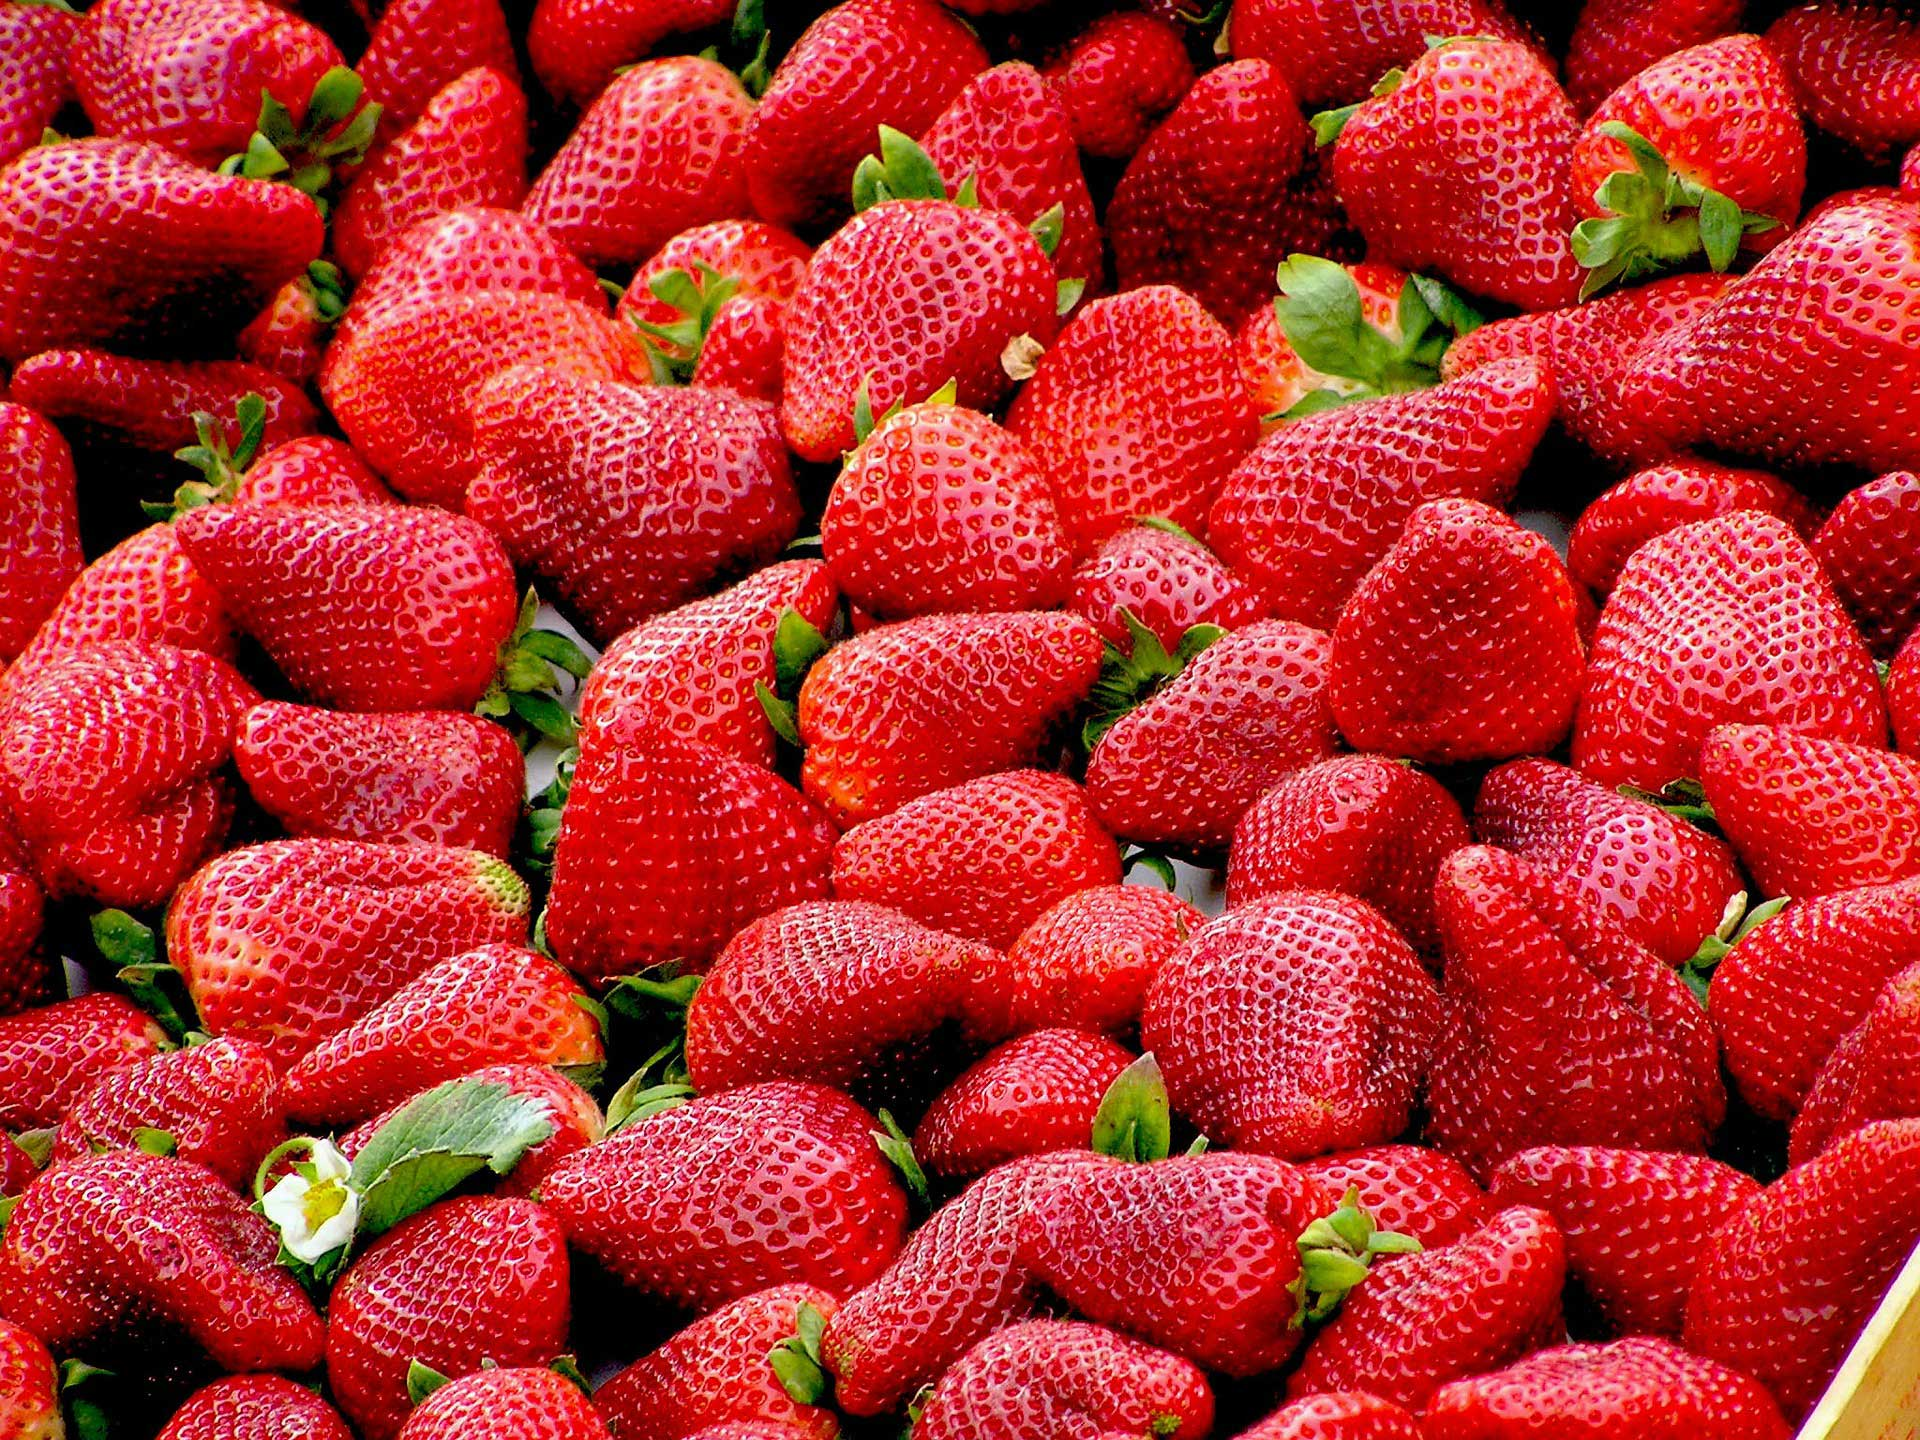 Sustainable Management of Strawberry Crops